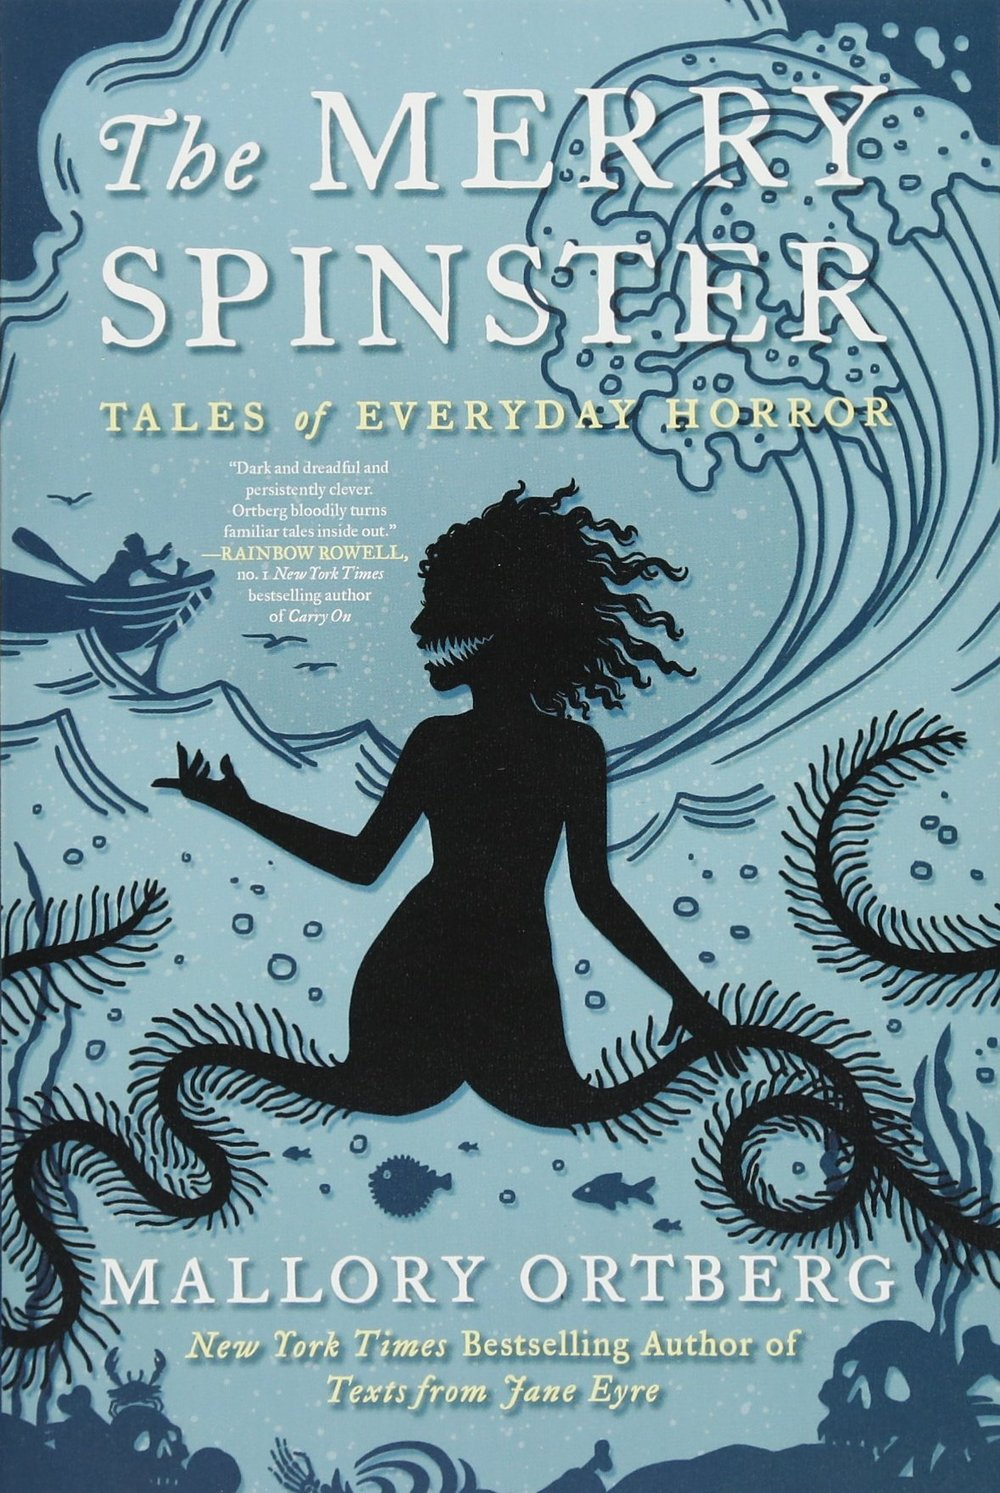 The Merry Spinster , by Mallory Ortberg